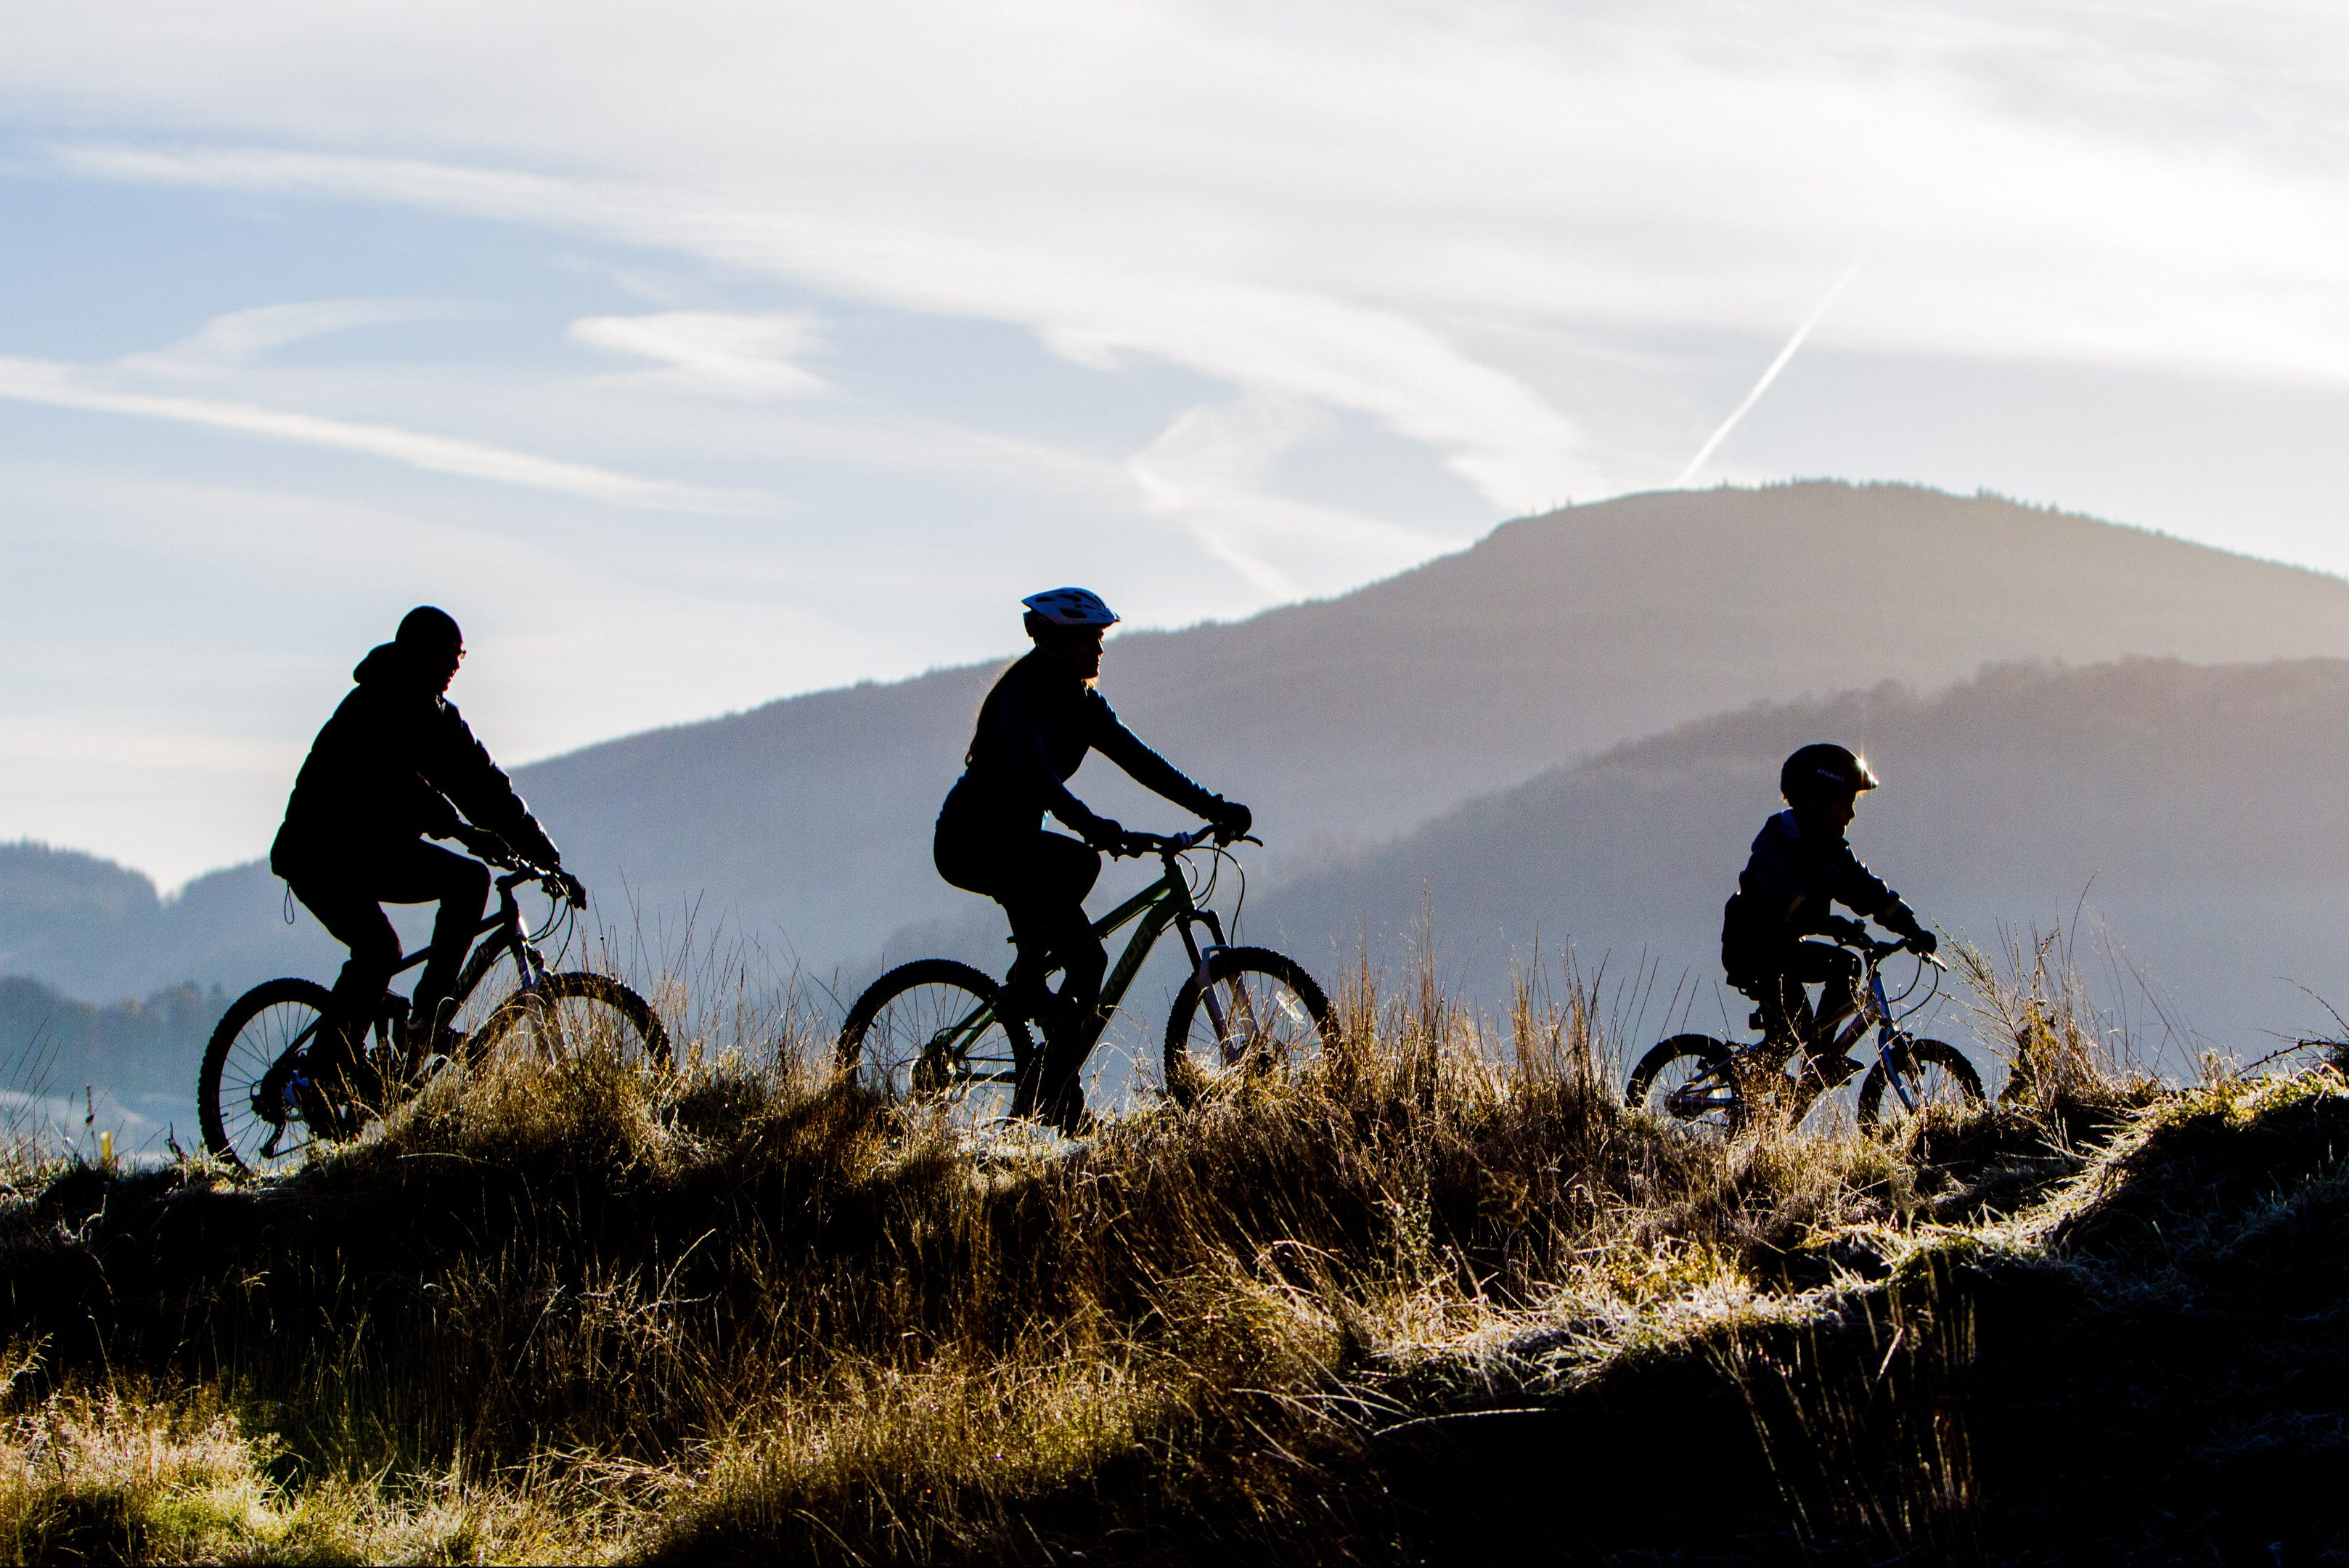 After the success of the inaugural event in 2015, Scotland's Mountain Bike Festival returns to Comrie Croft in June.